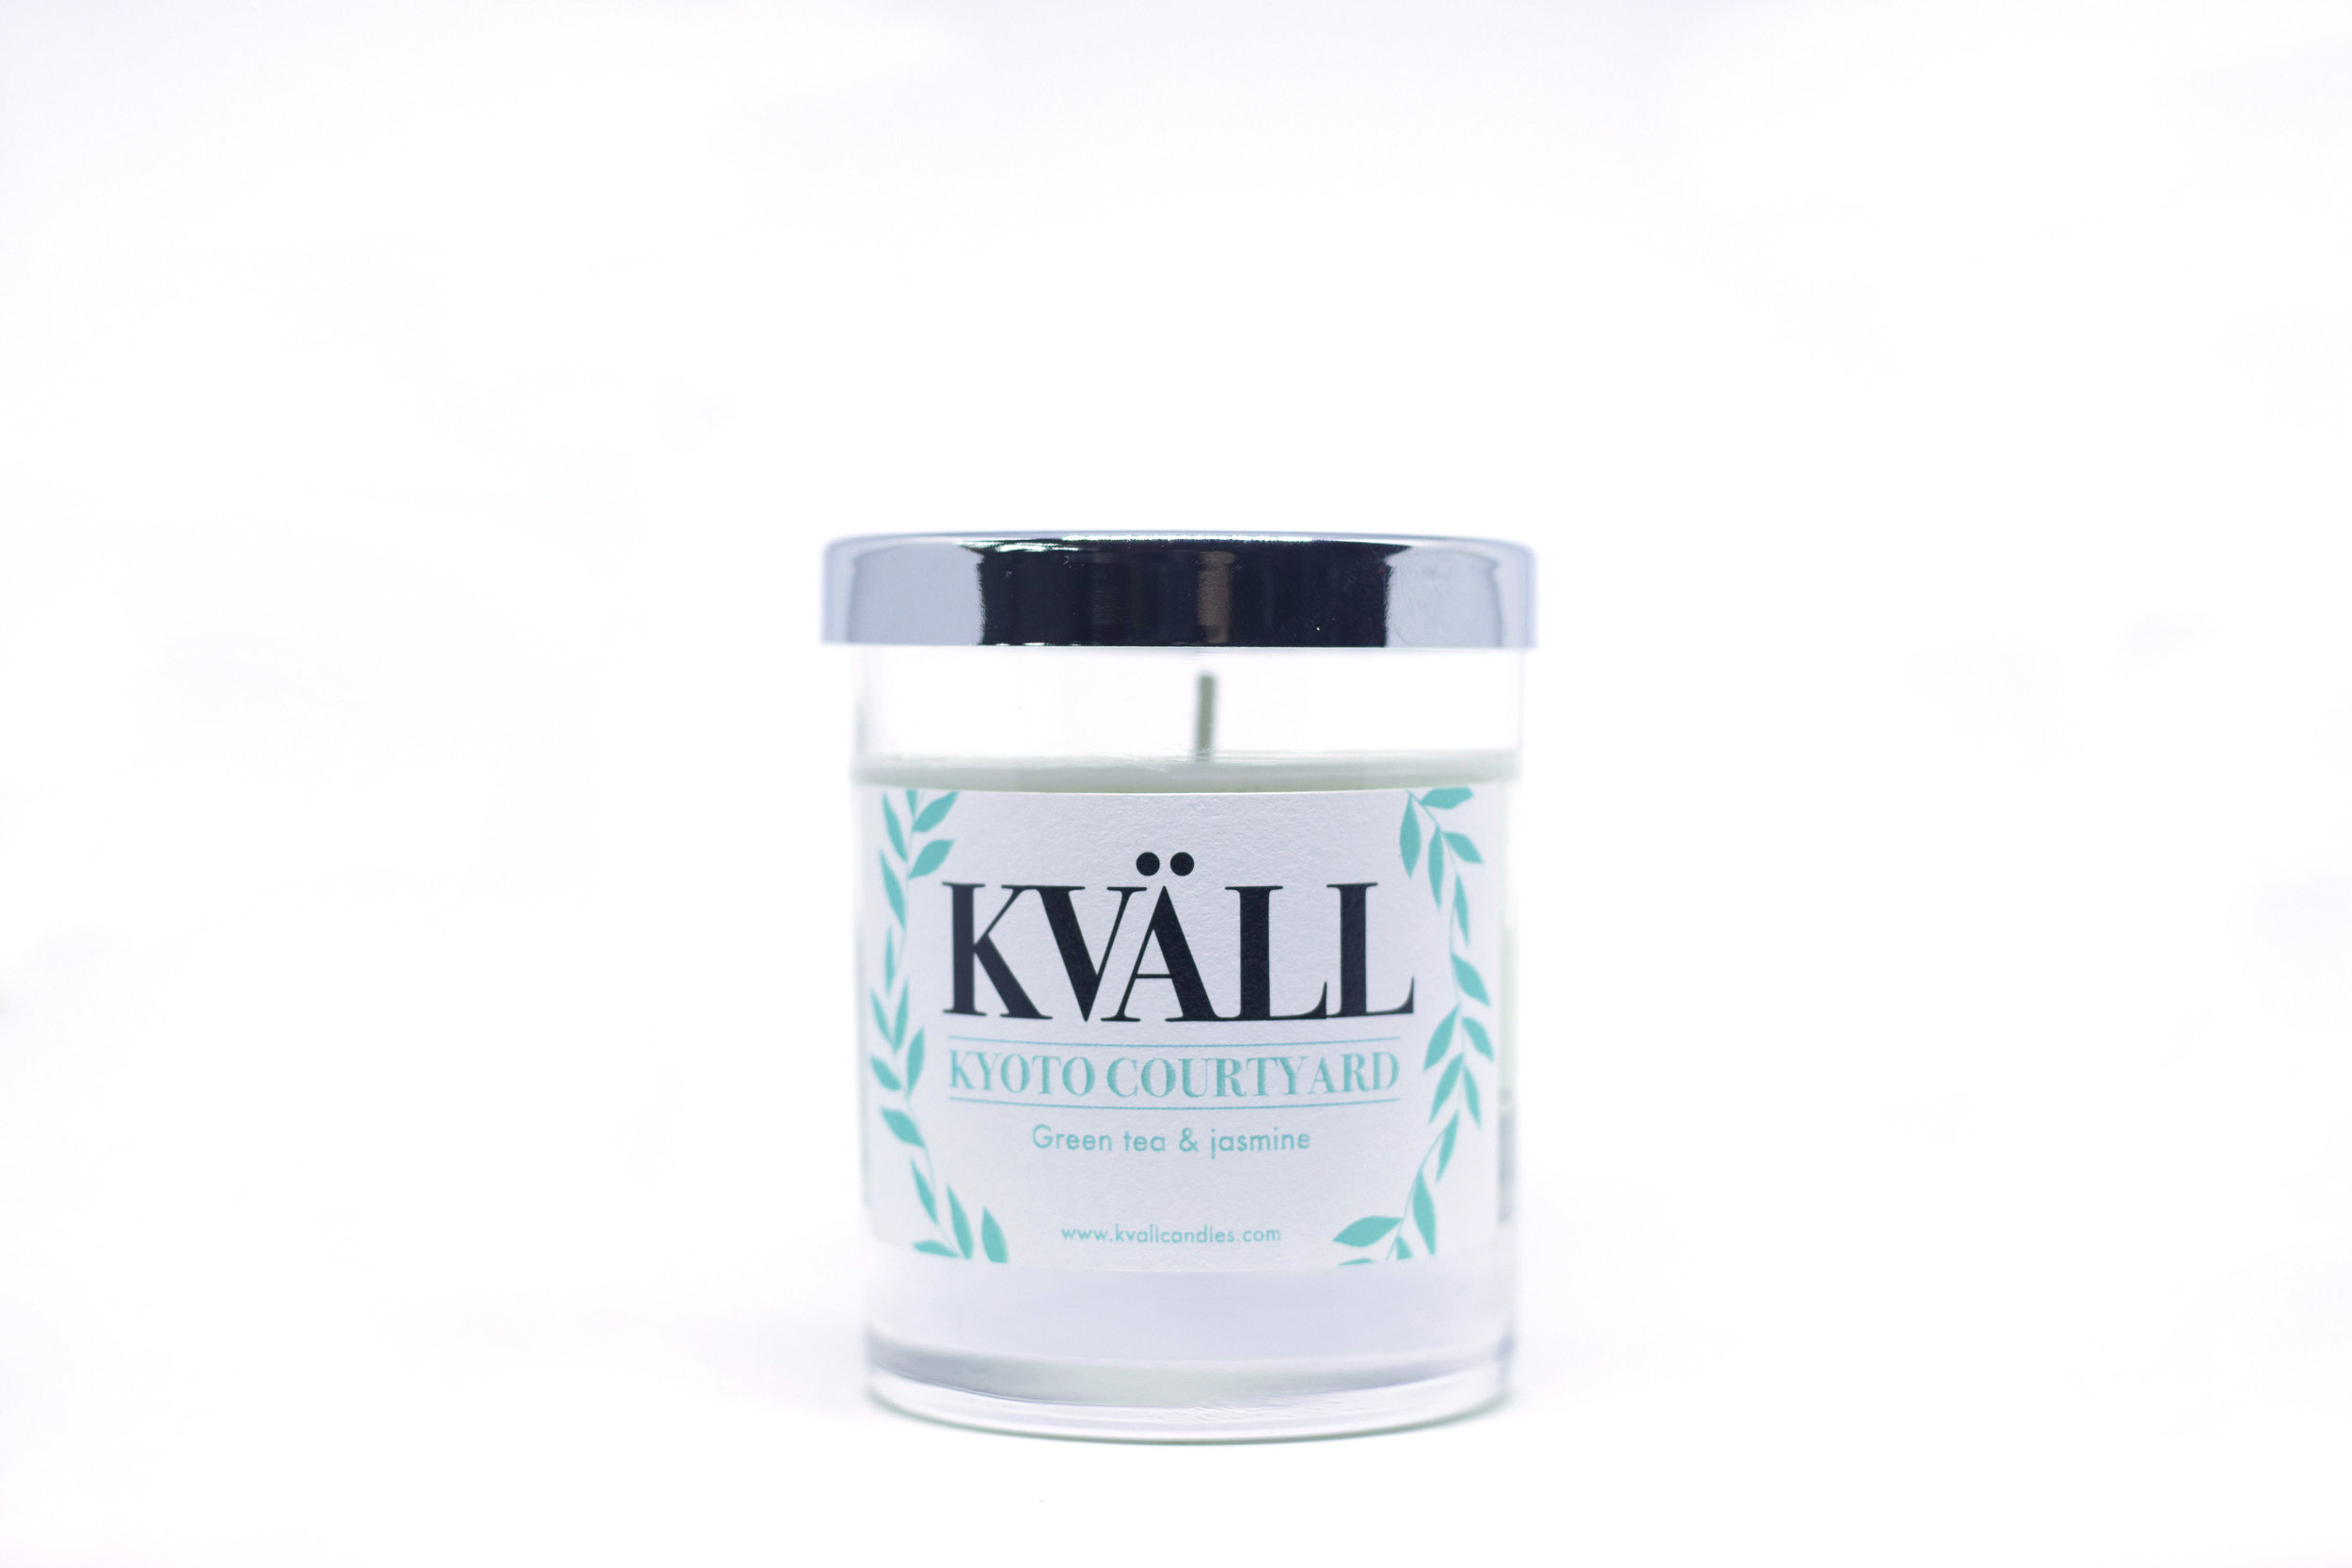 kvall candle kyoto courtyard